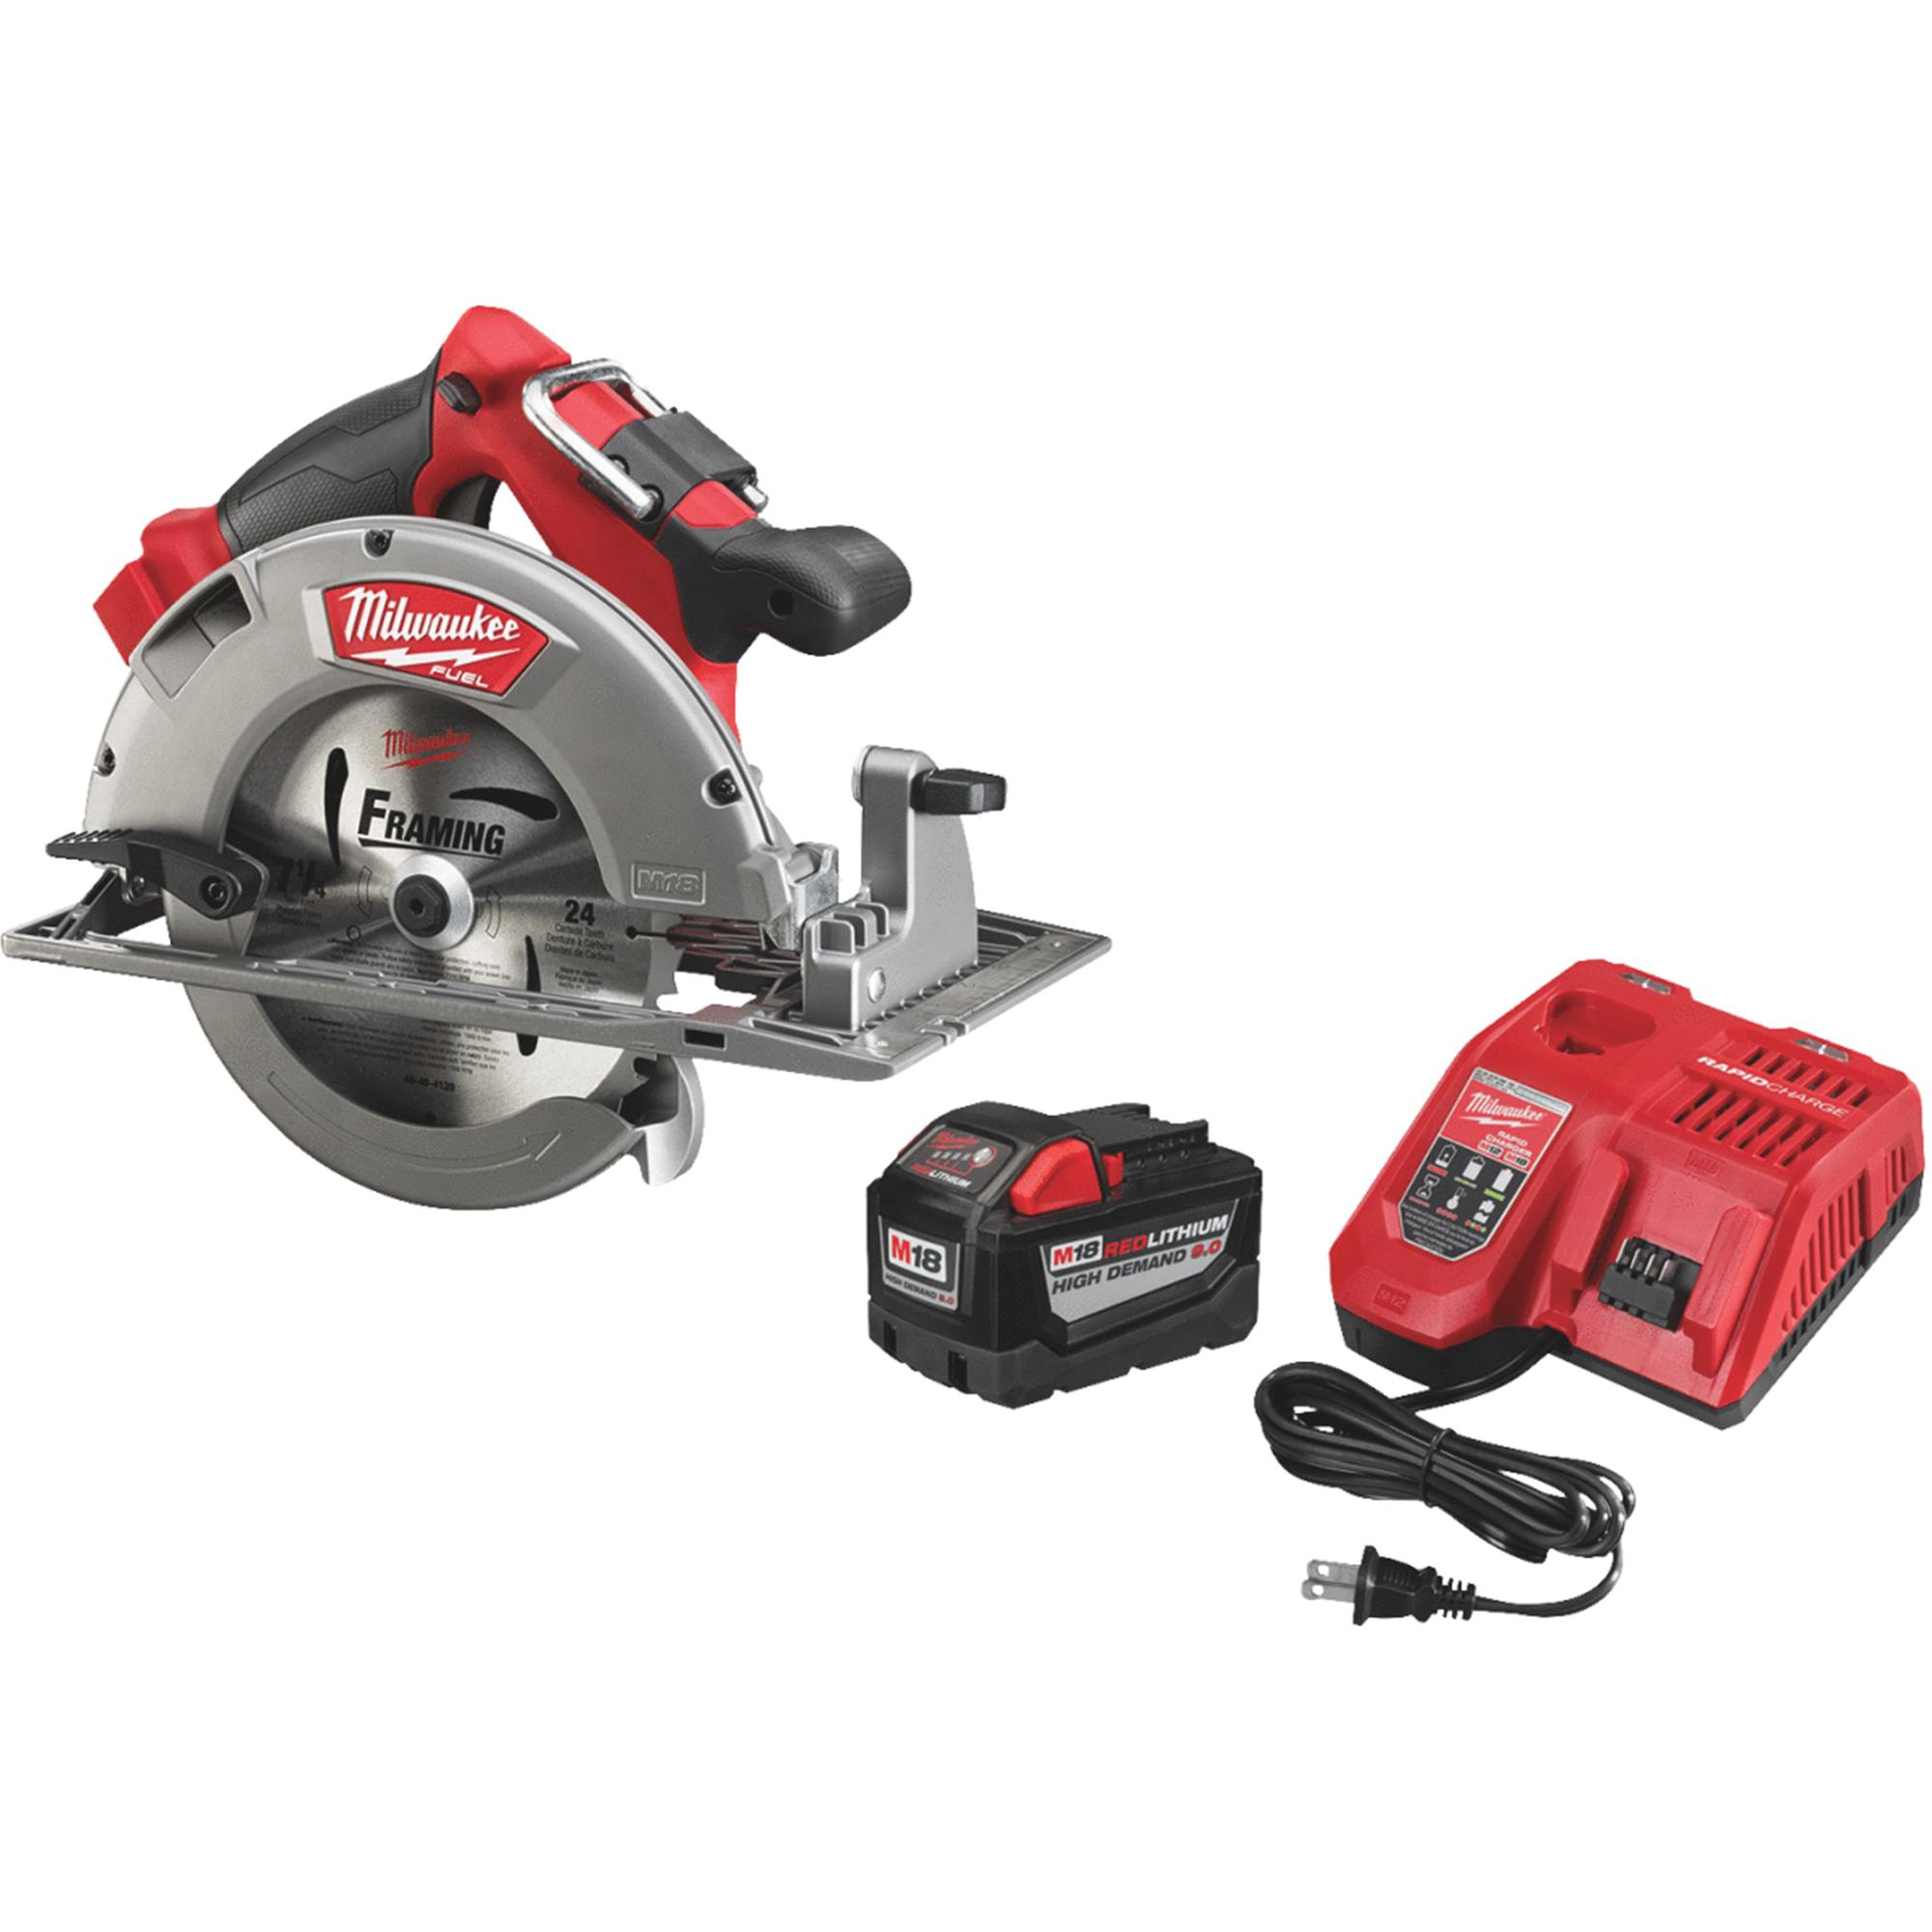 Milwaukee M18 FUEL Lithium-Ion Brushless HD Cordless Circular Saw Kit by Milwaukee